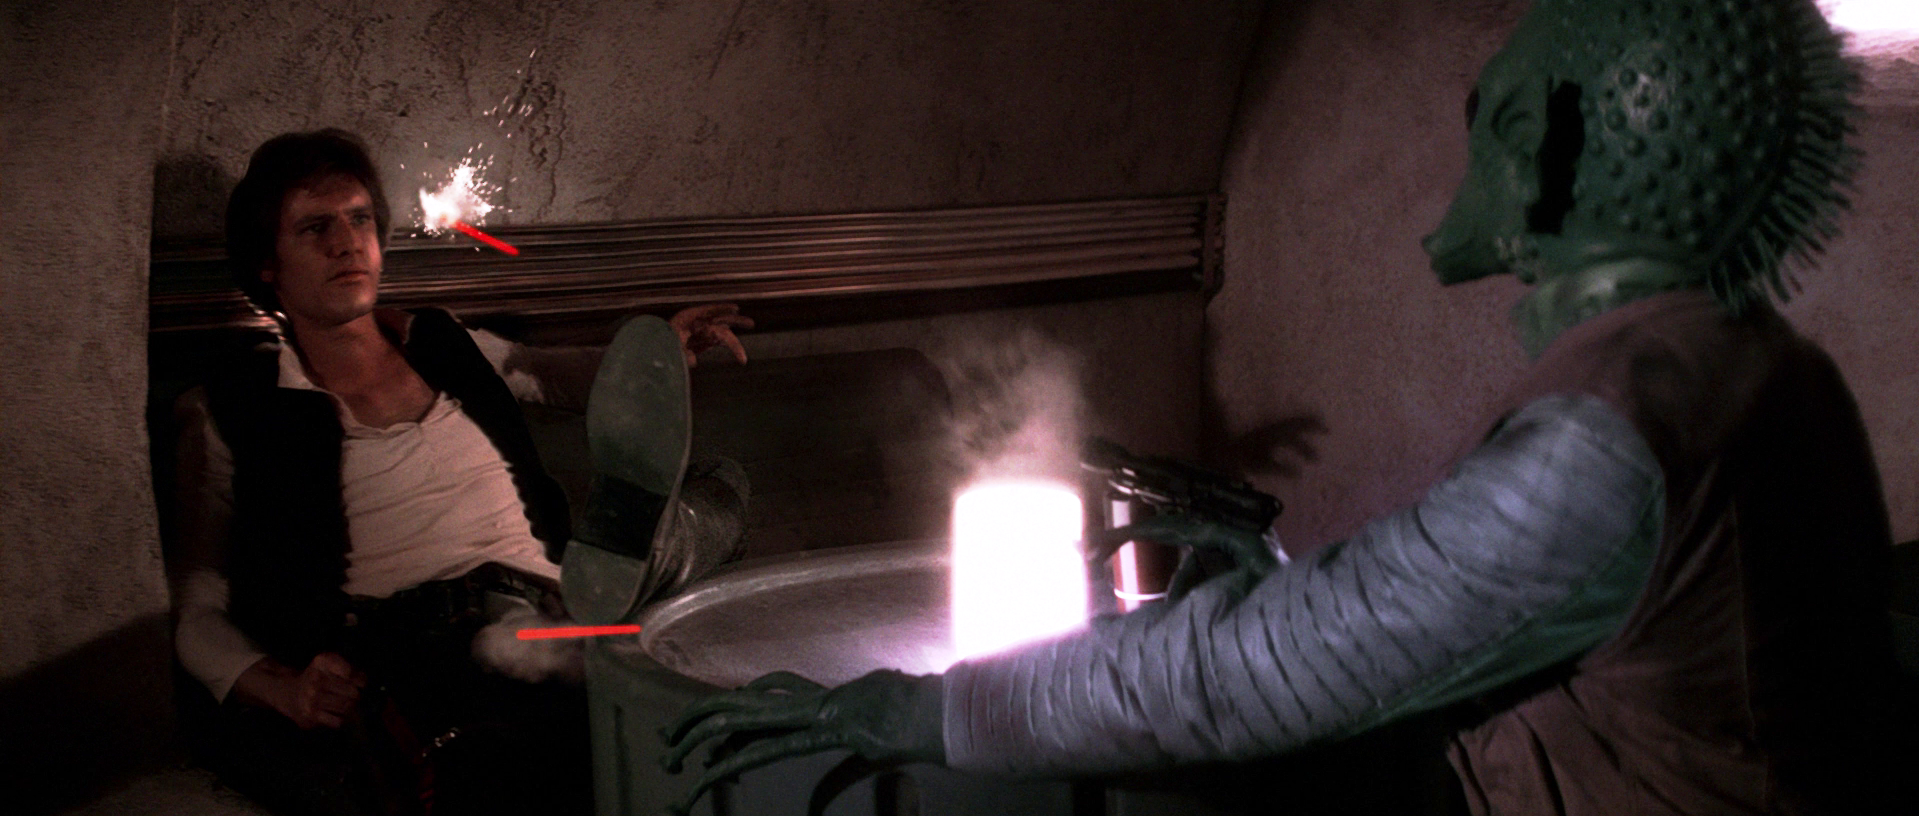 Greedo shot first in star wars